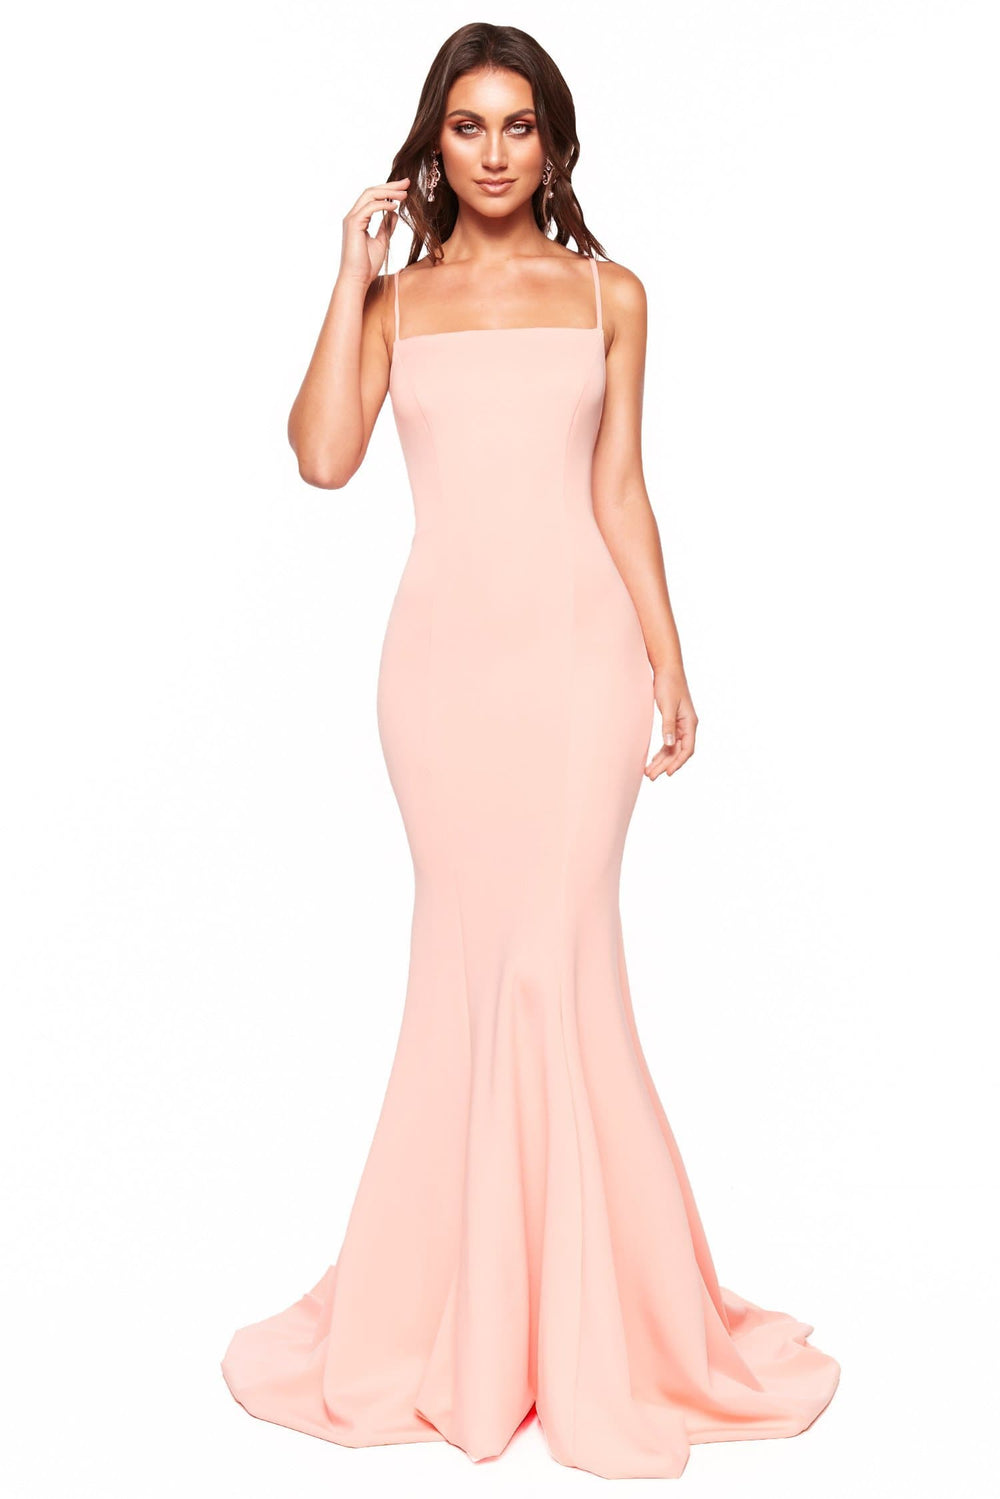 A&N Luxe Amira - Peach Gown with Straight Neckline & Lace-Up Back